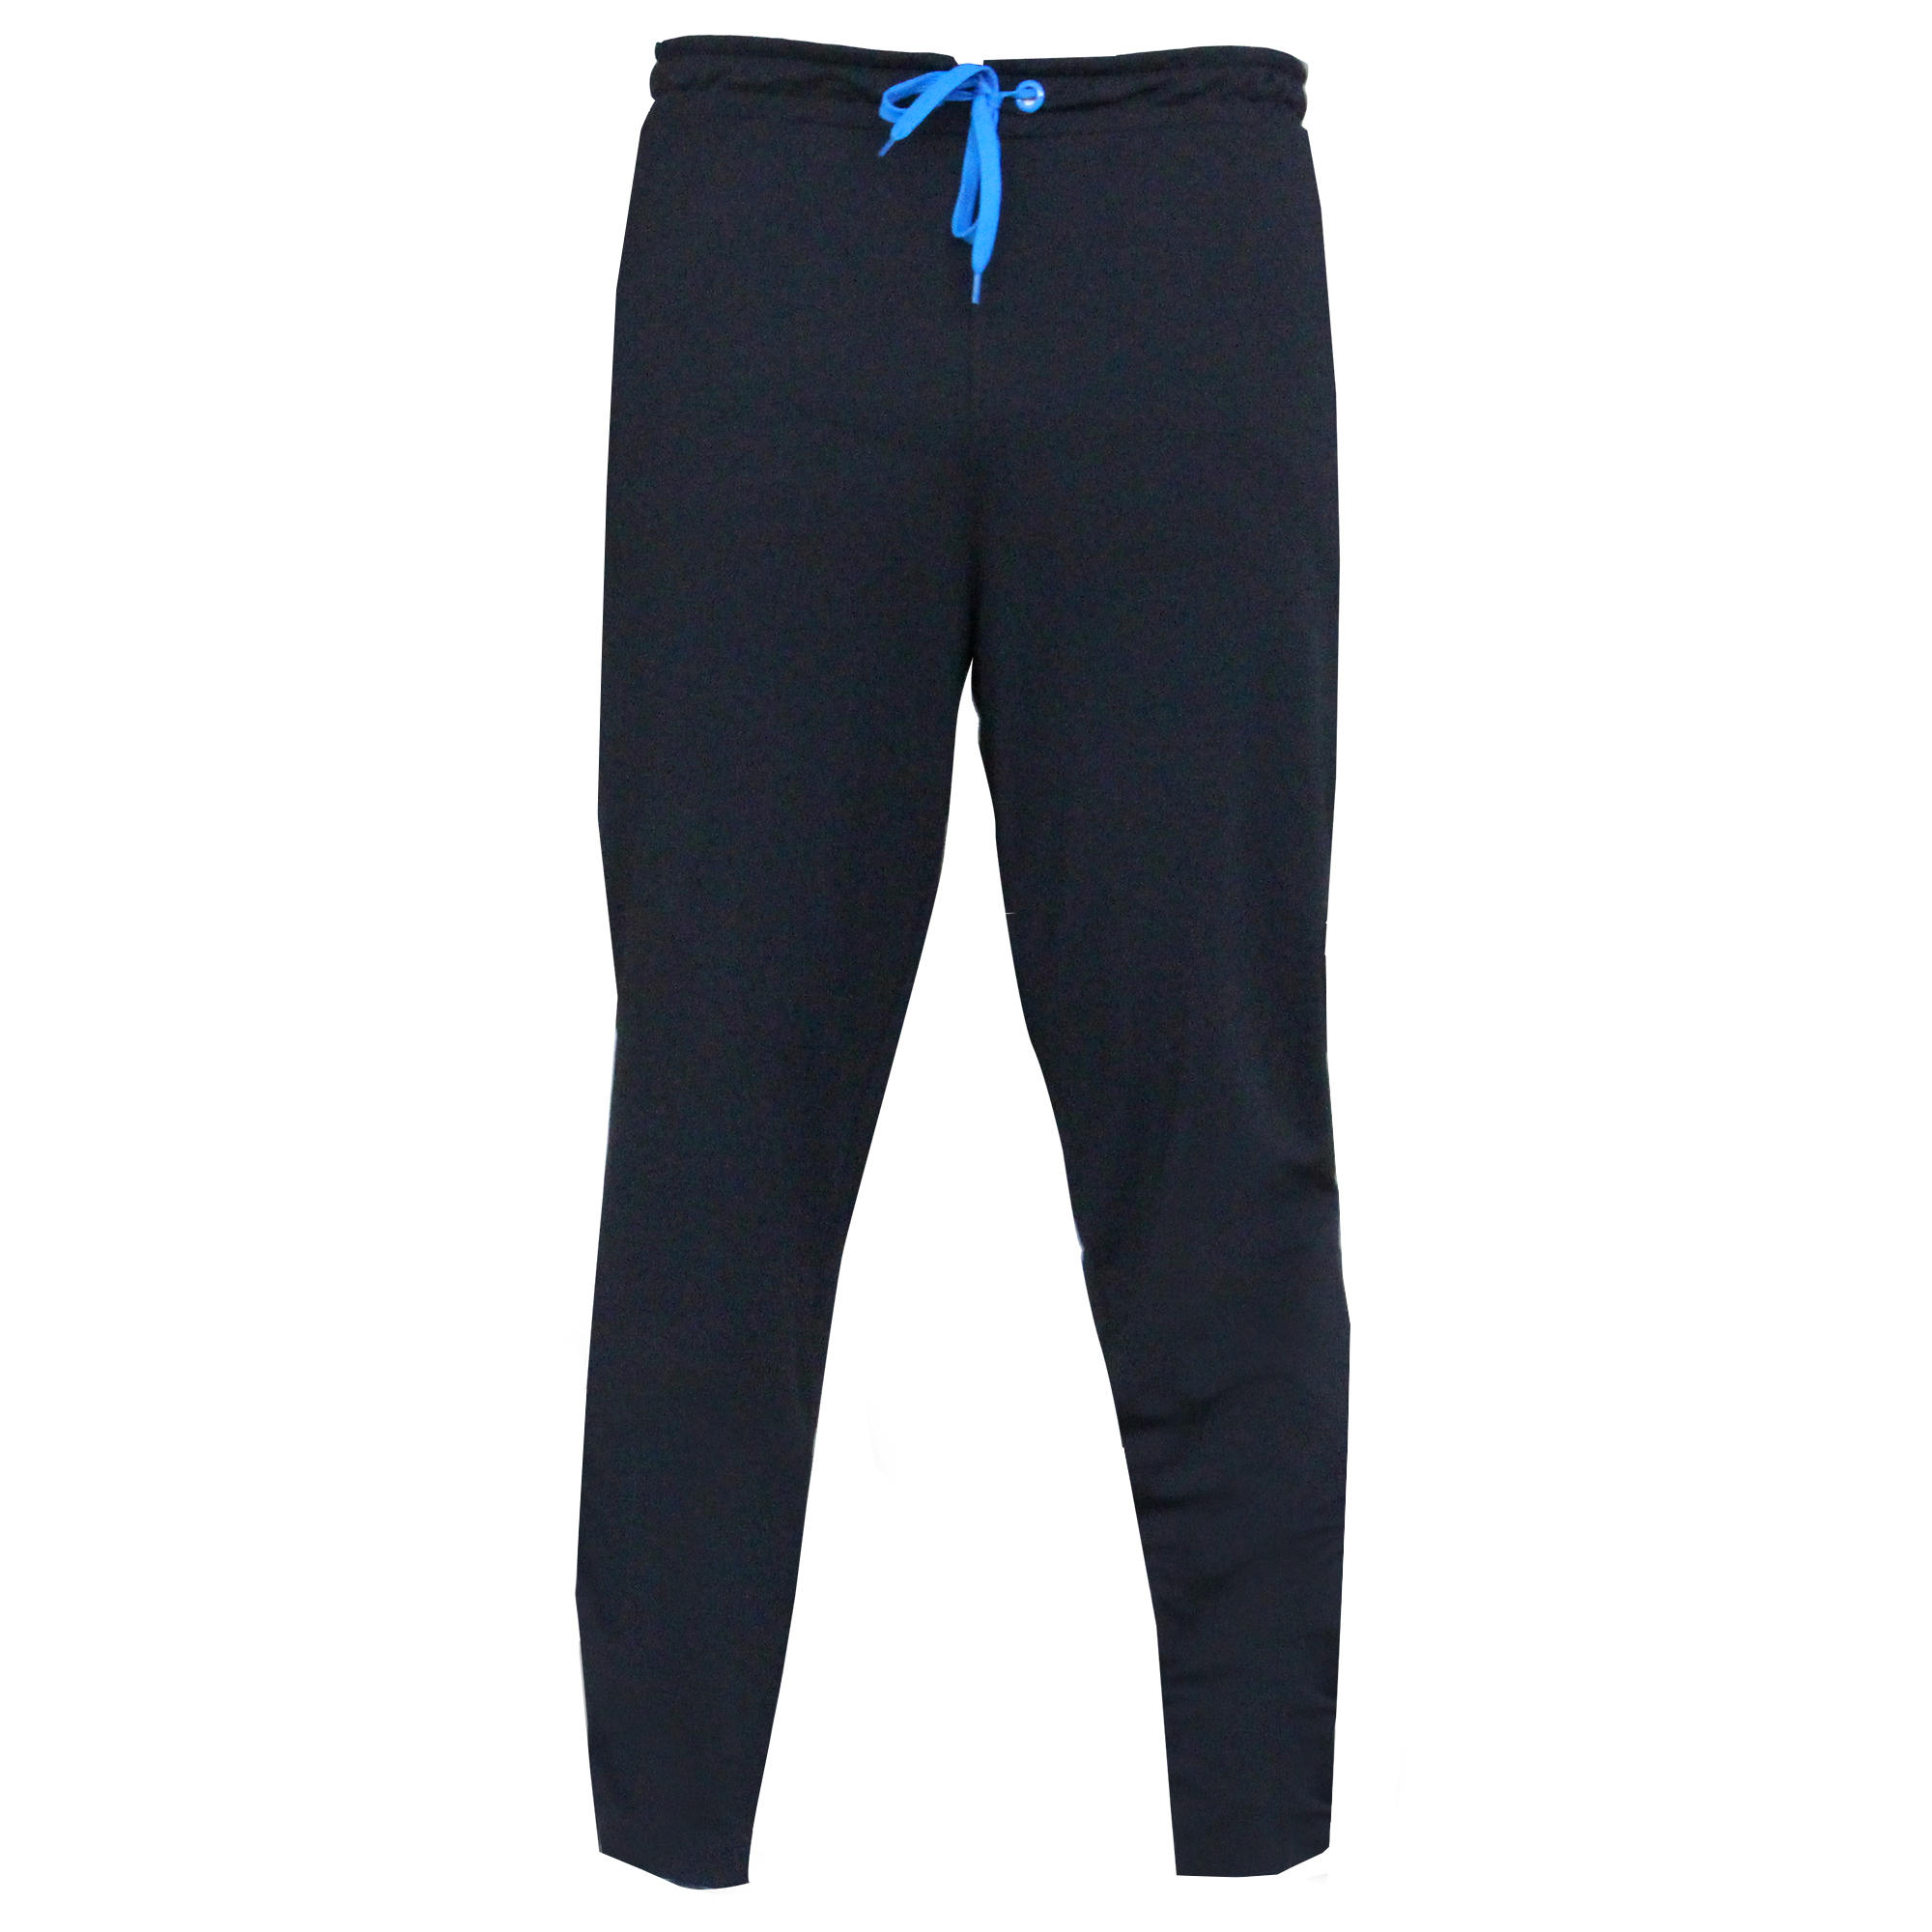 CRICKET TROUSER TAPERED TR 500 - Black